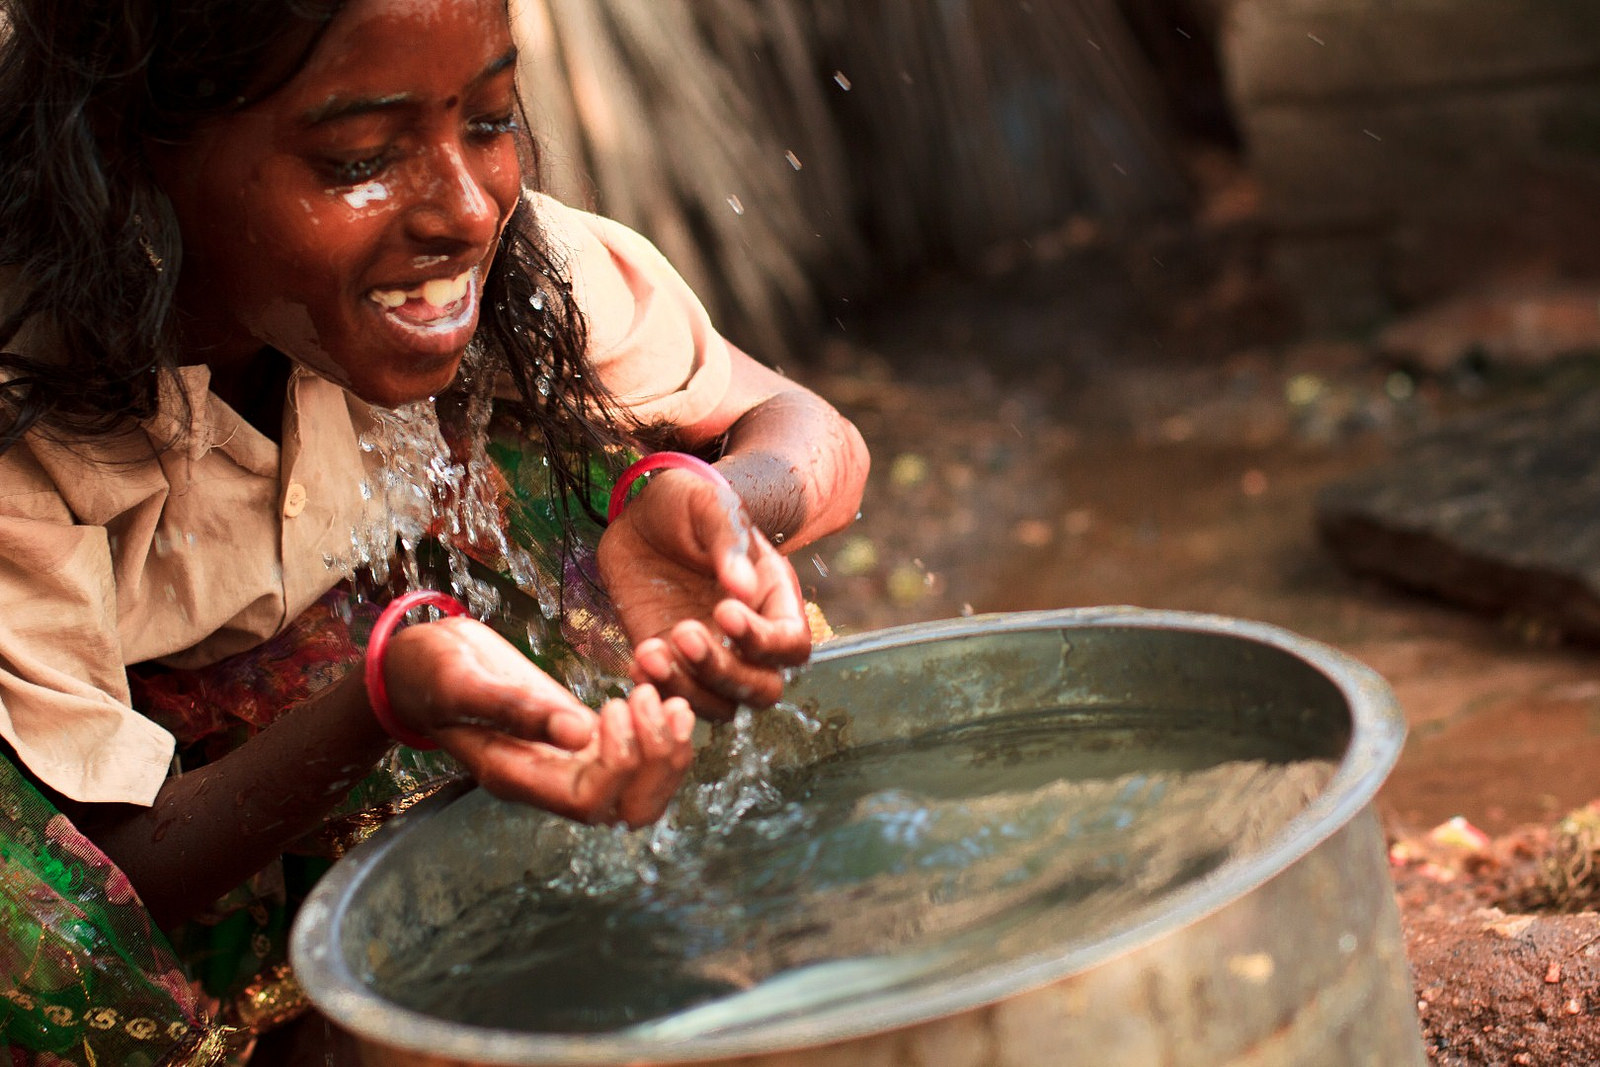 This New Water Filter Kills 99% of Bacteria & Helps Millions of People